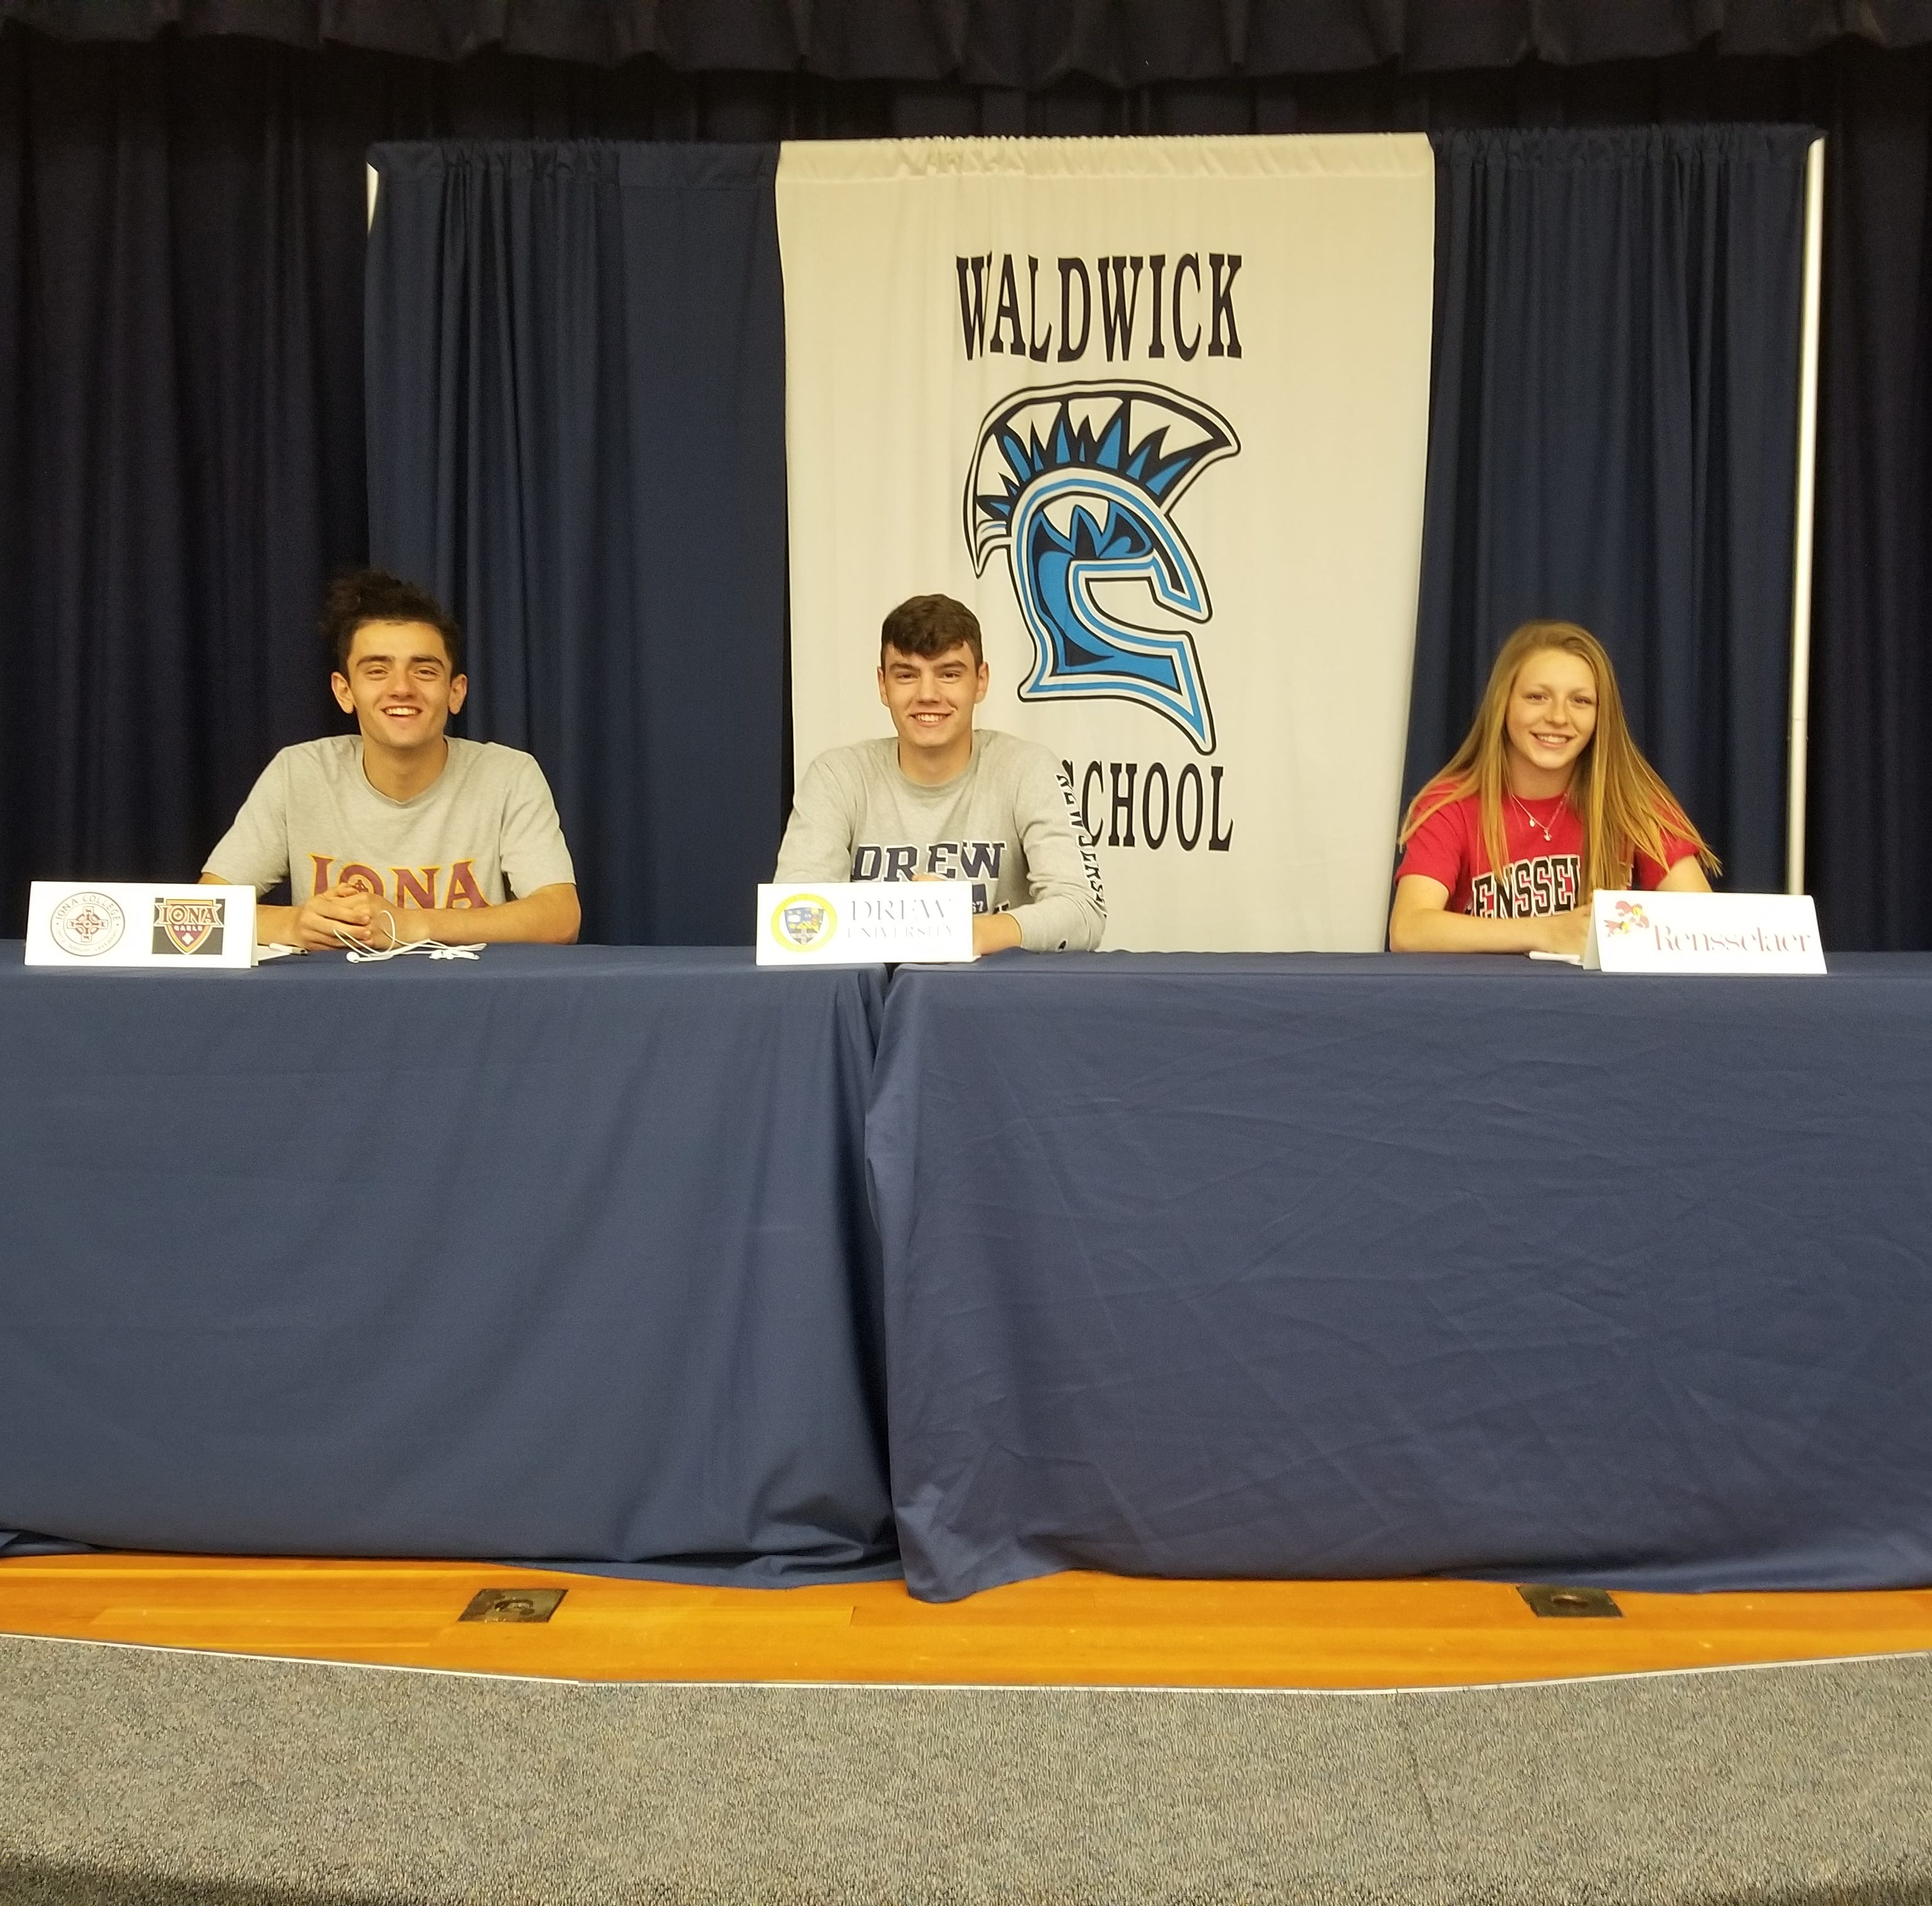 Signing Day: Waldwick, and A Man done wrong